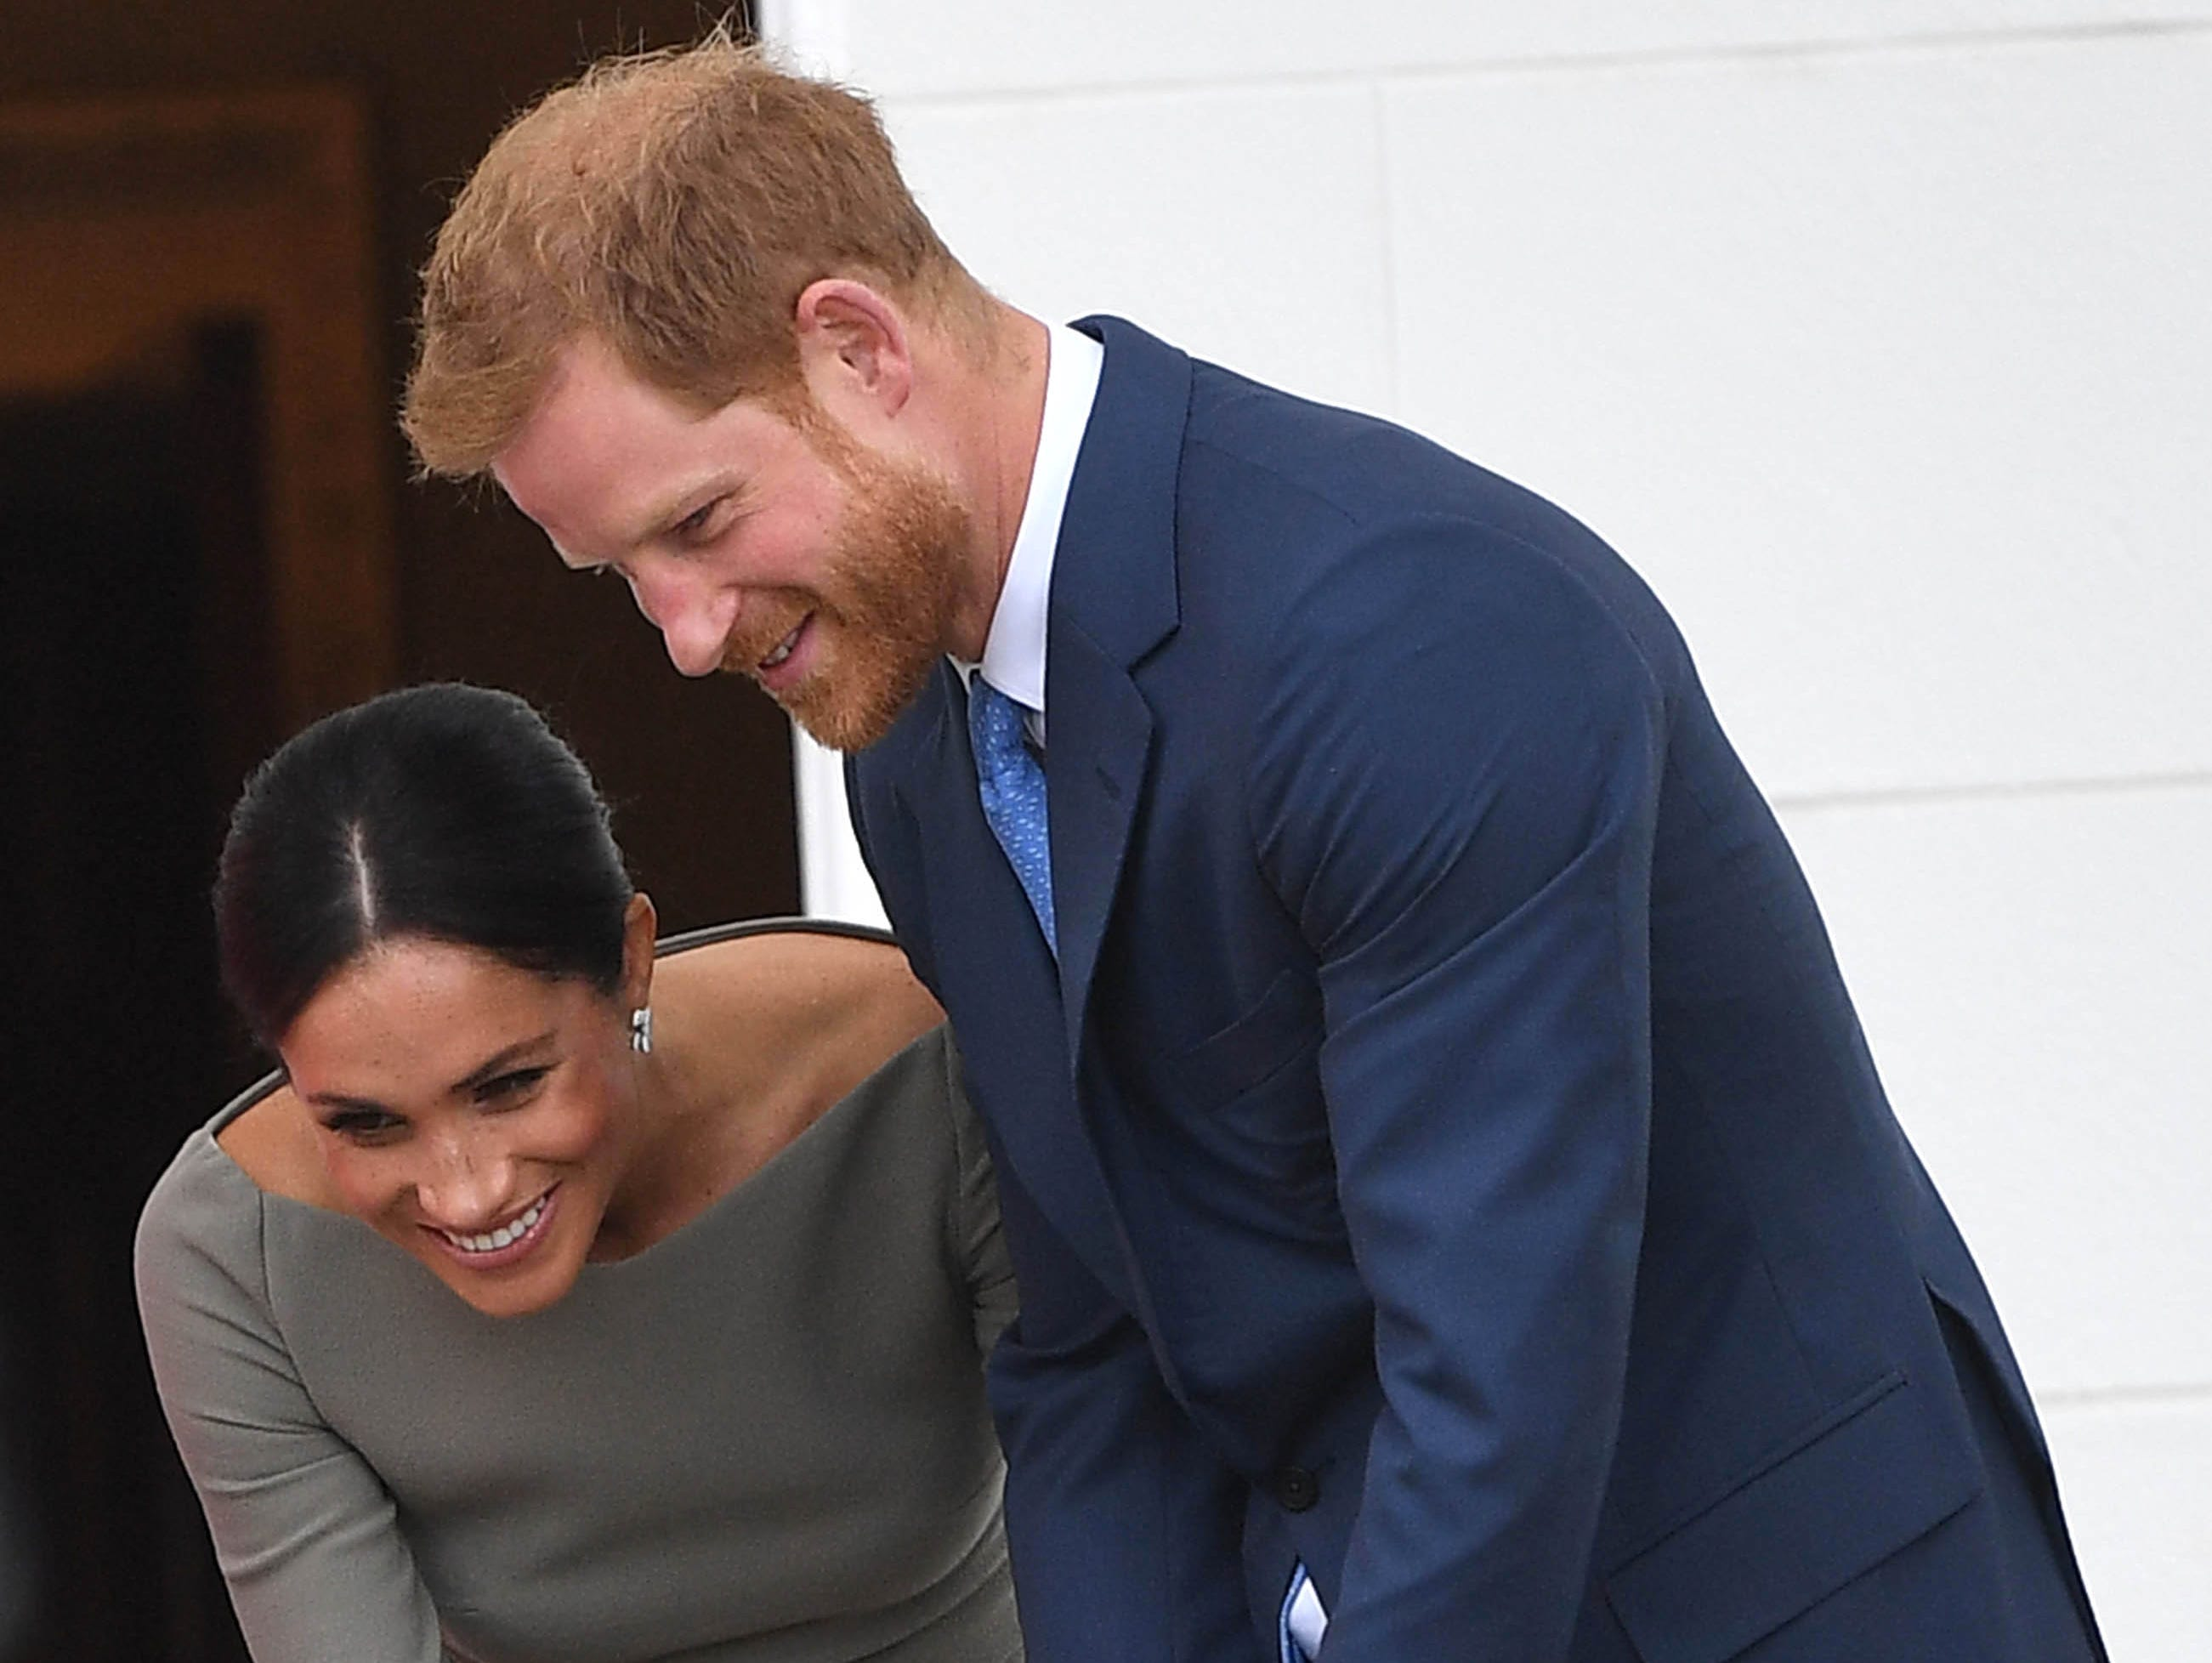 July 11:  Prince Harry and Duchess Meghan meet a furry friend while visiting Dublin, Ireland.